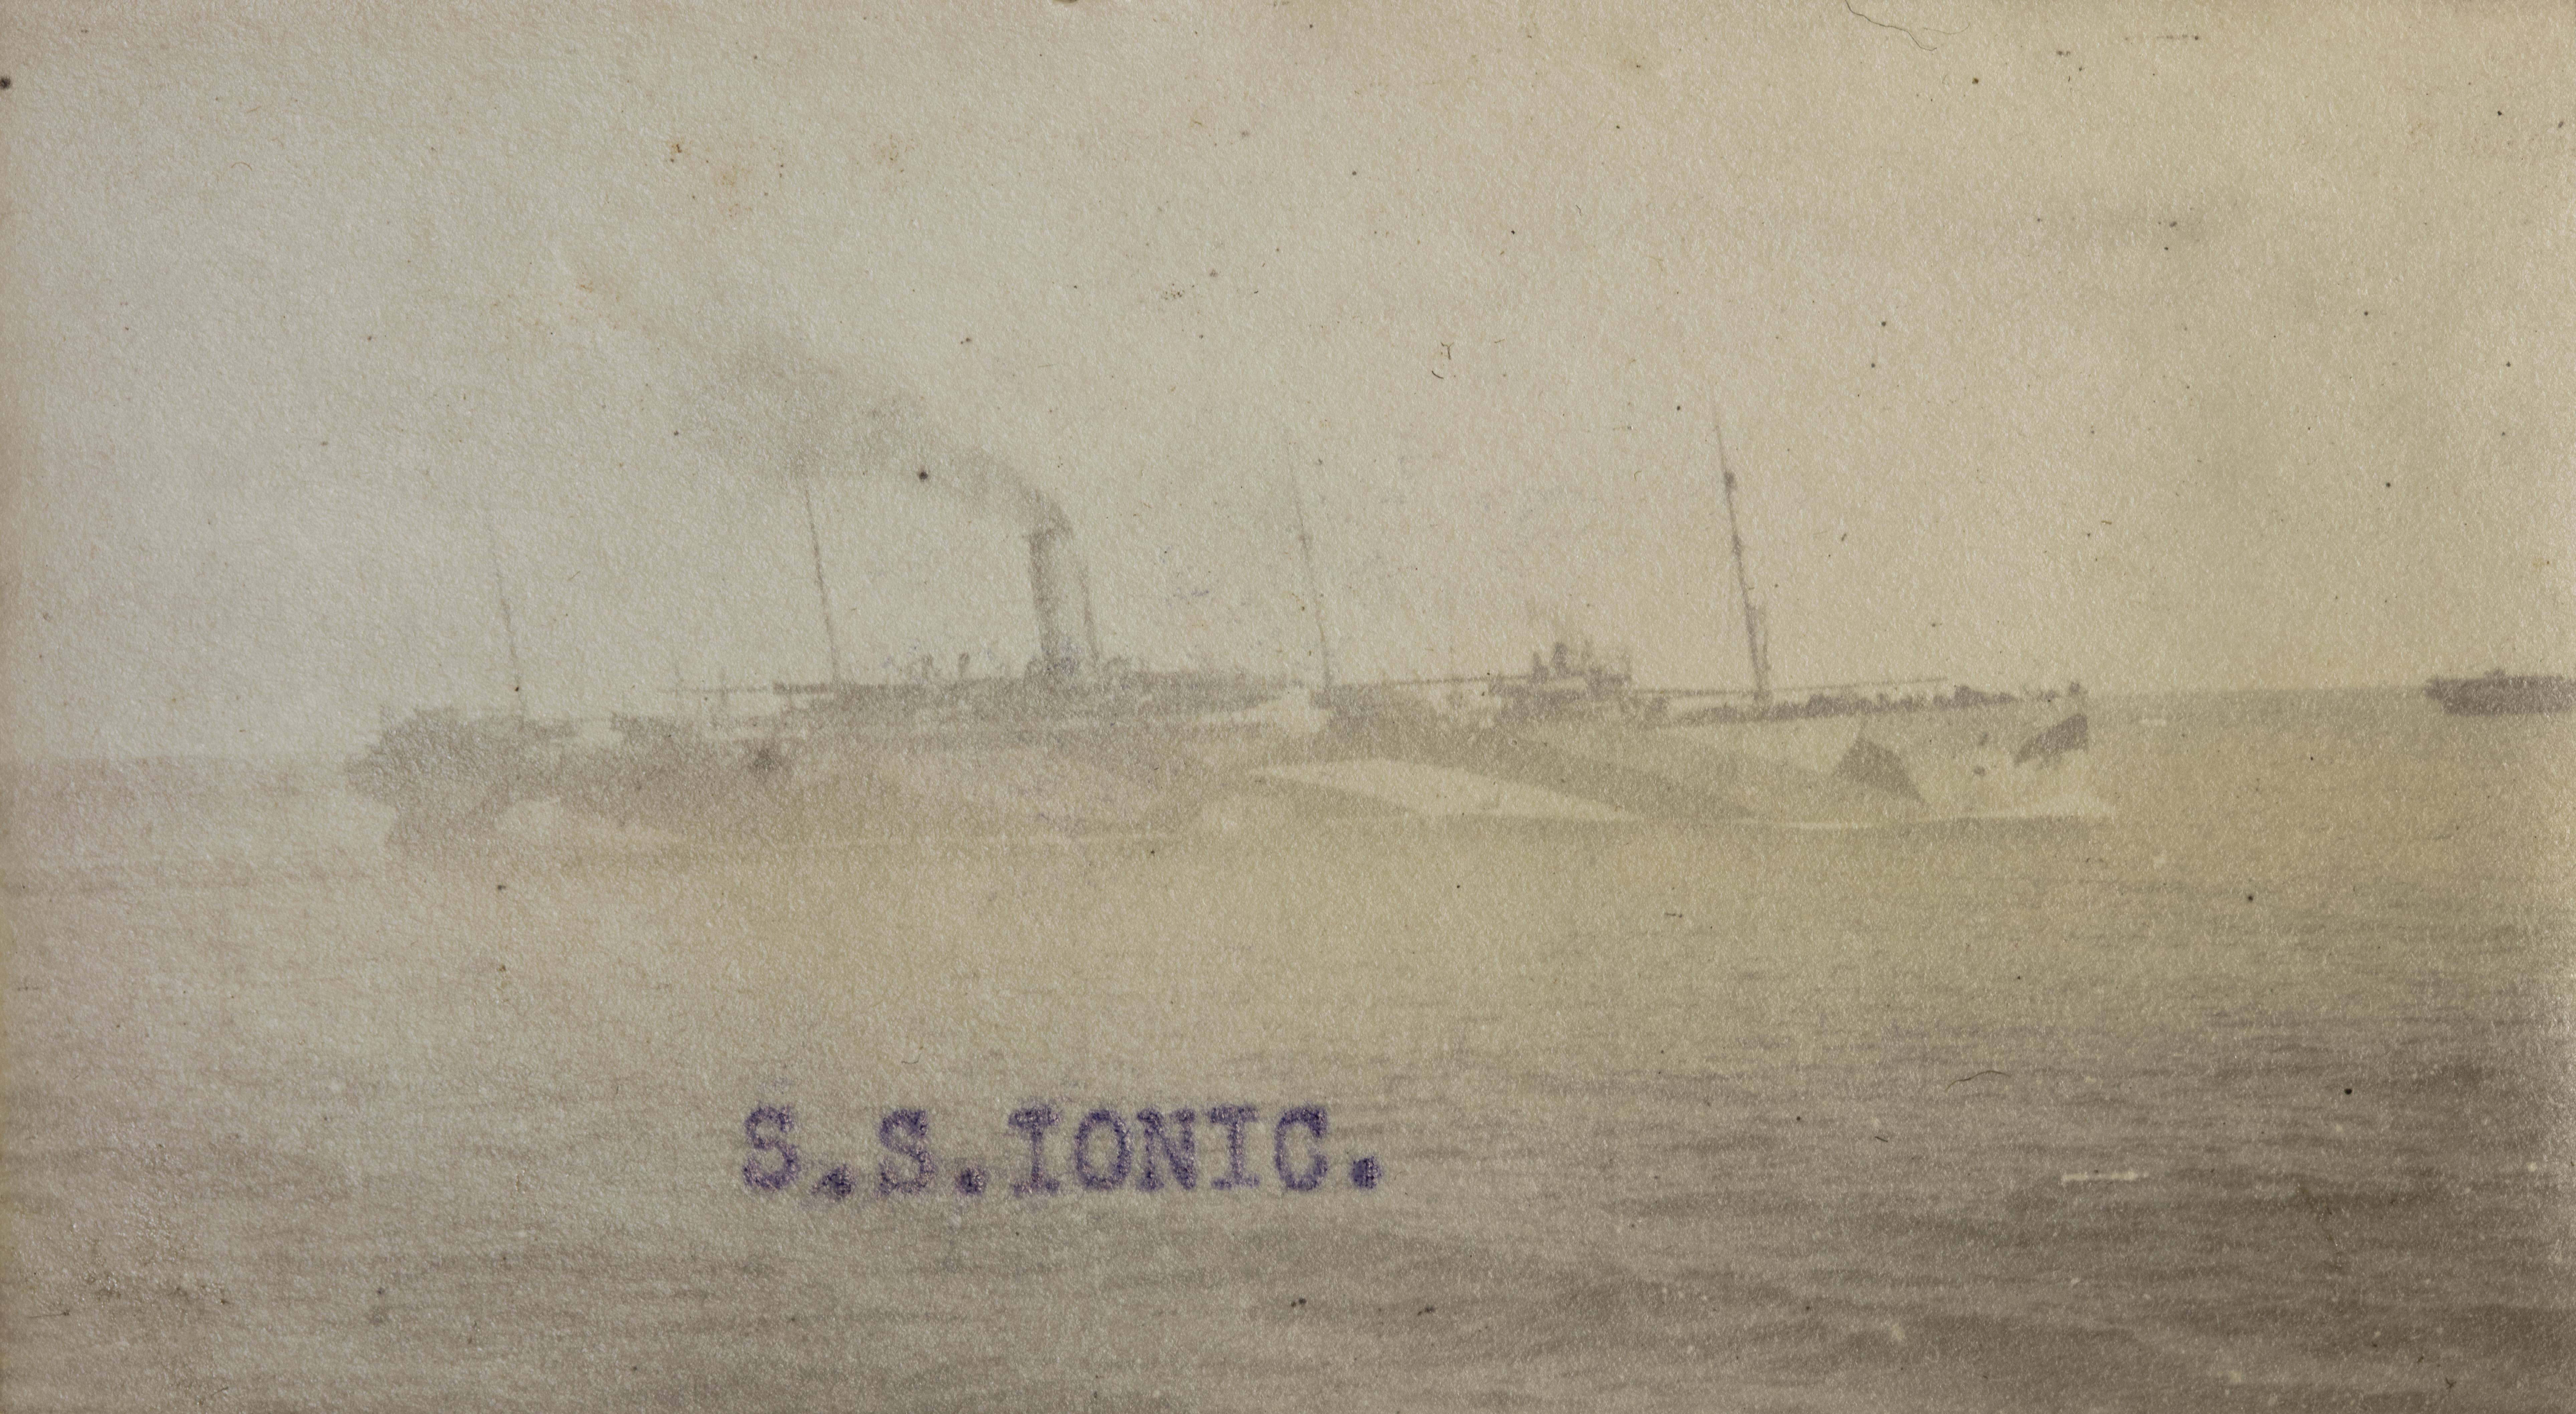 Image of Margaret's postcard of the SS Ionic, a ship painted in dazzle camouflage